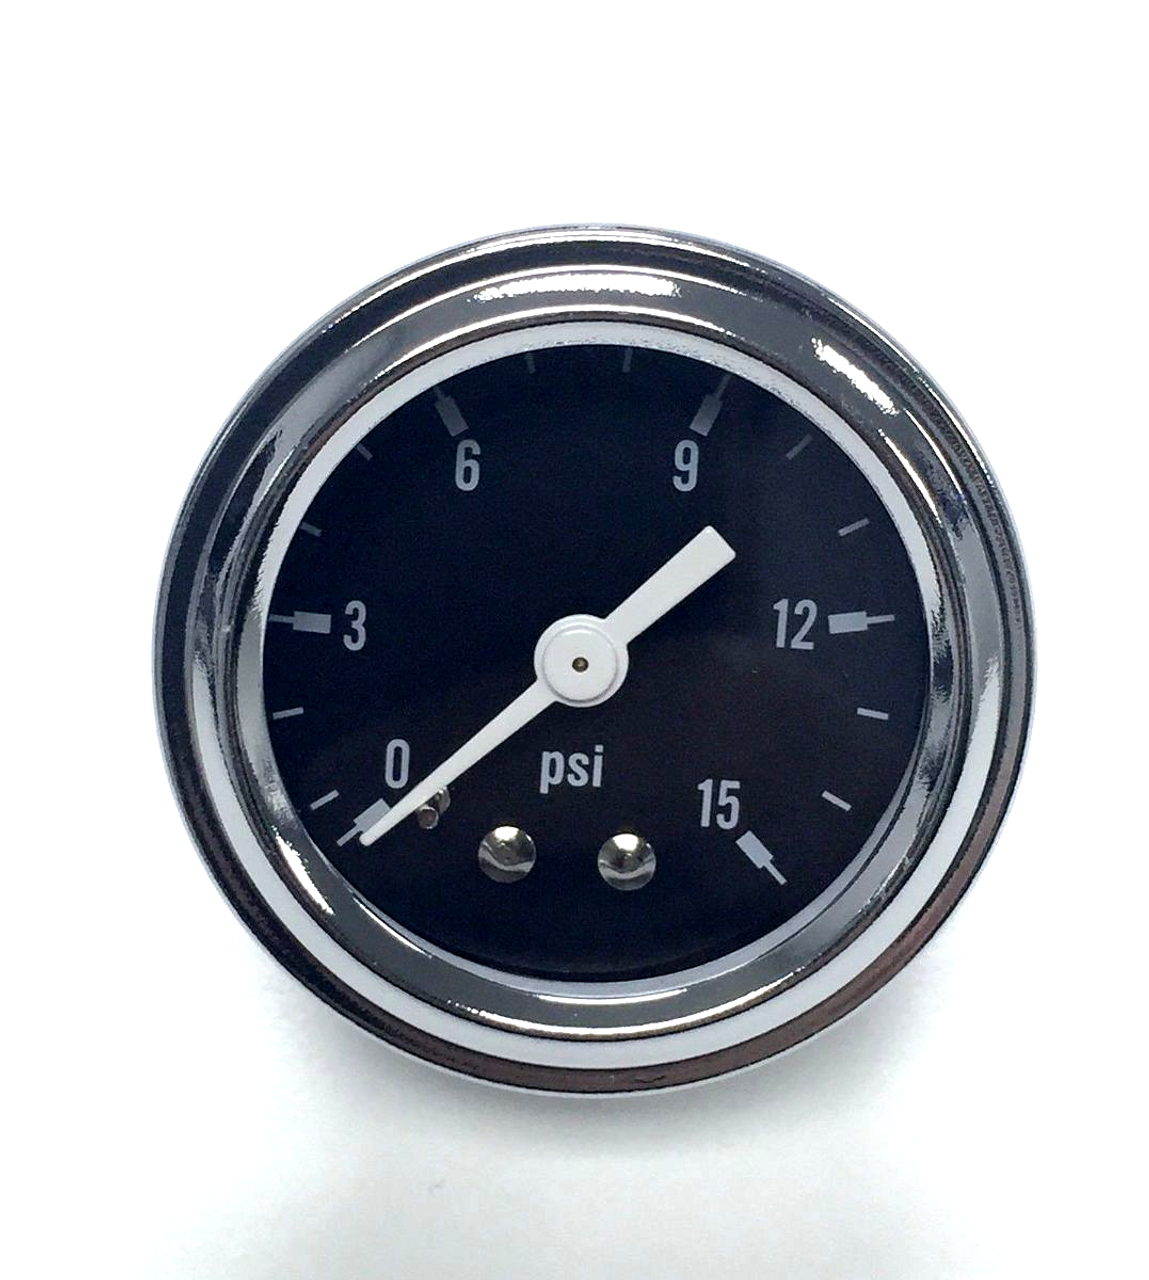 "0-15 PSI Fuel Pressure Gauge, 1.5"" Black Face, Chrome Trim"